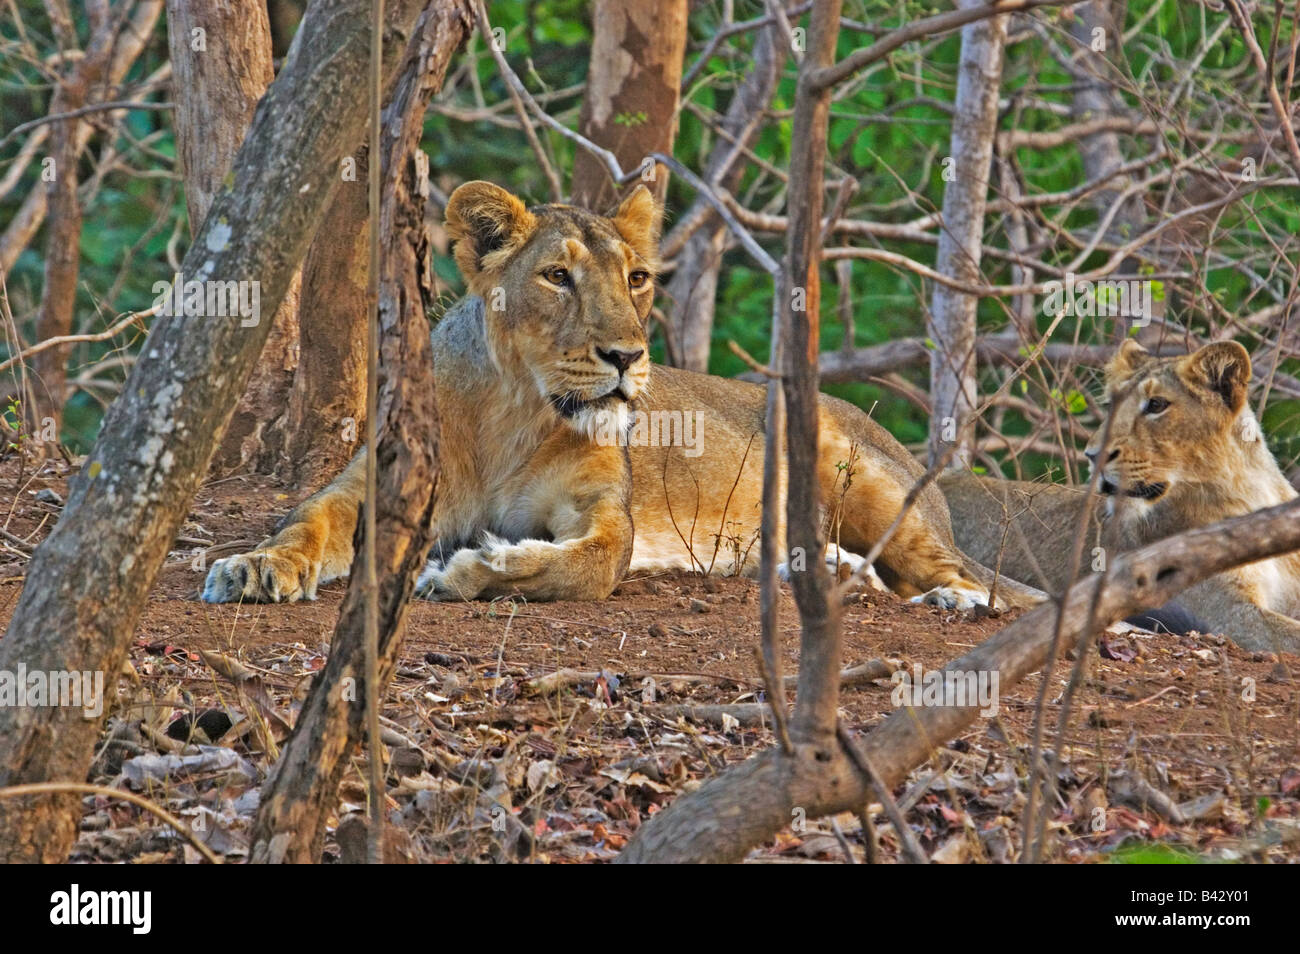 asiatic lion family - Stock Image